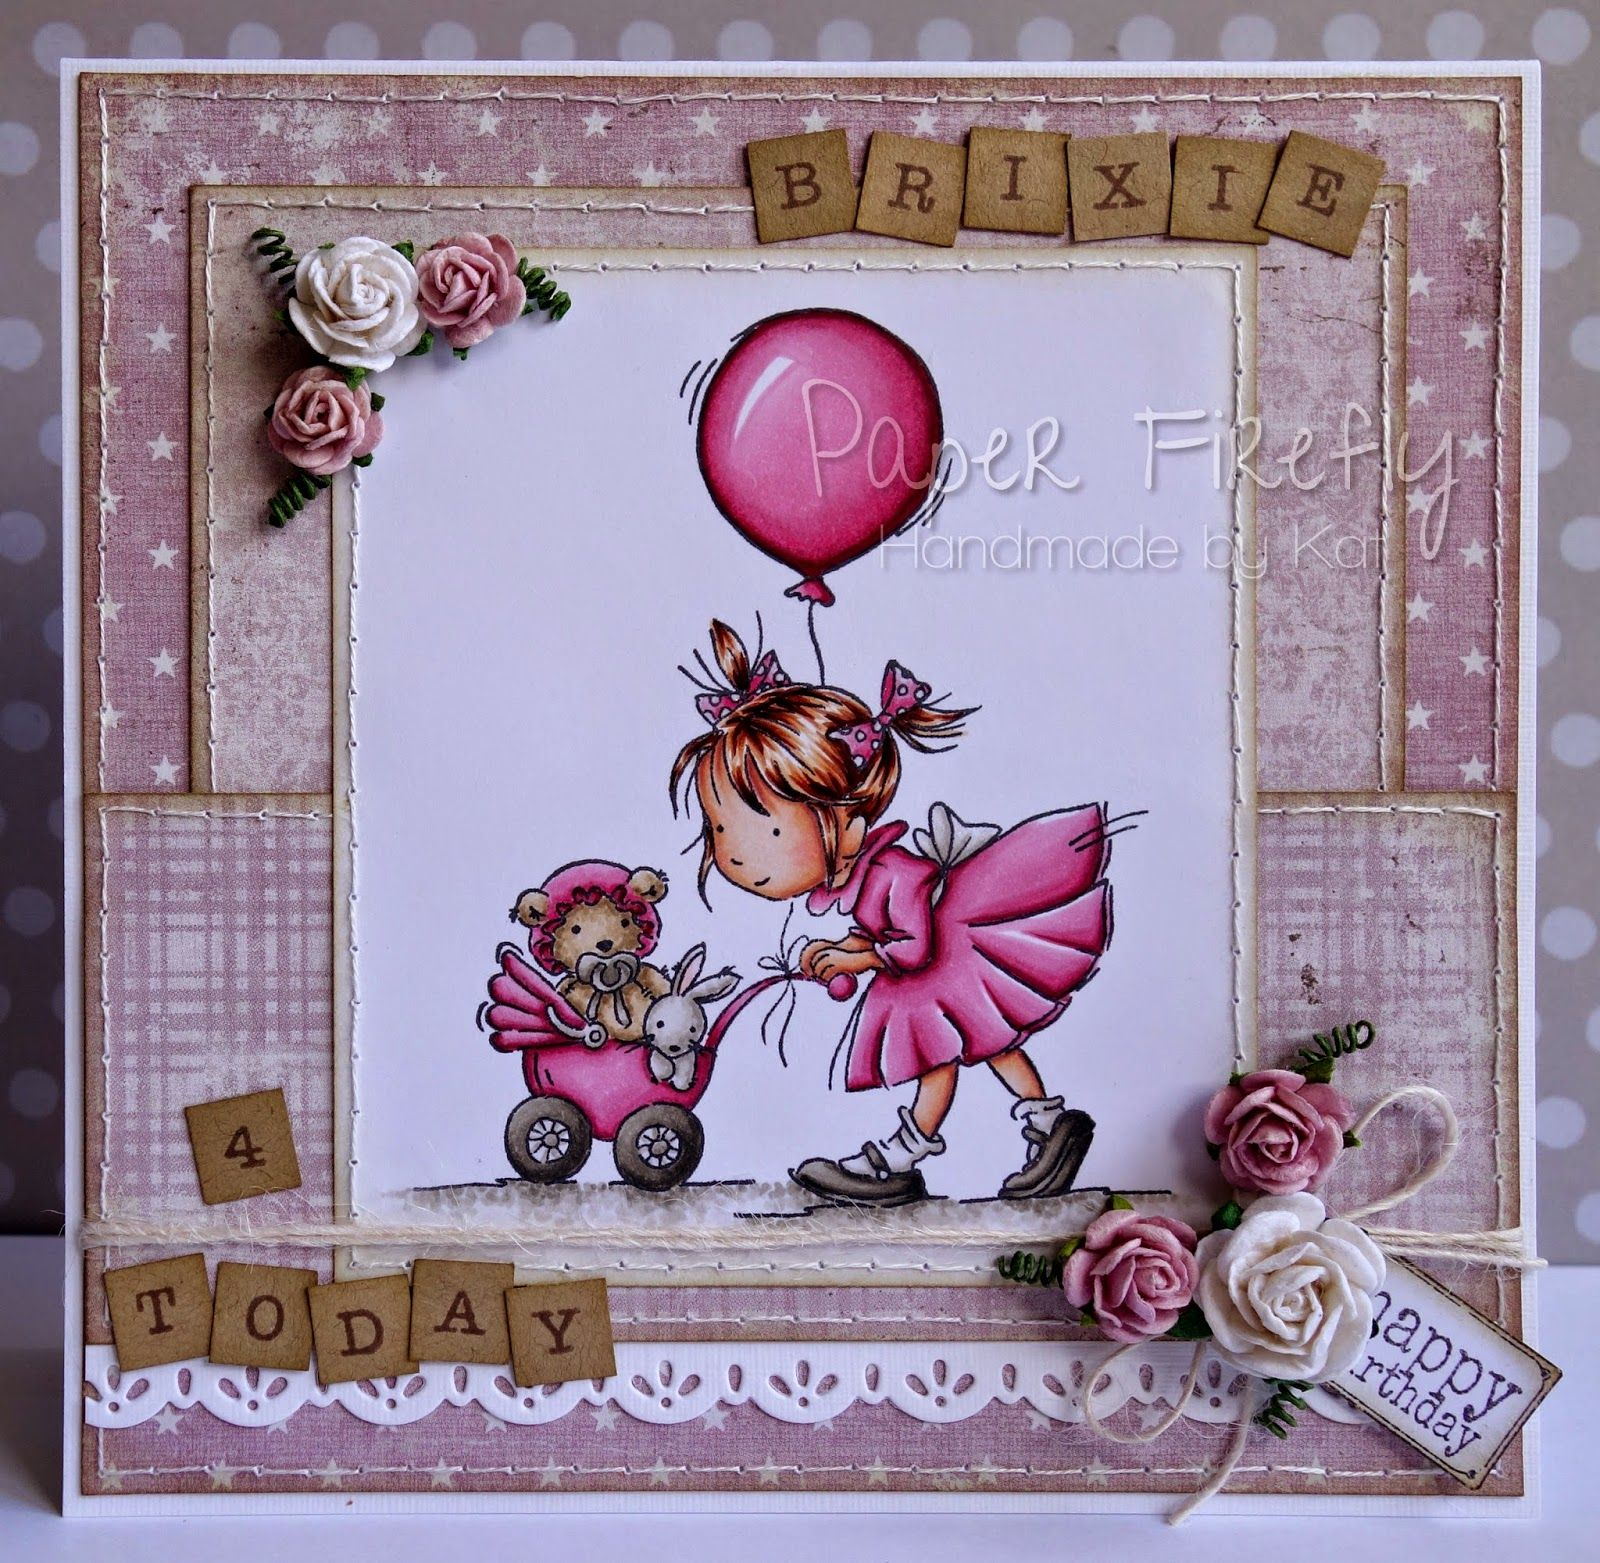 Pink and girly birthday card featuring uafternoon strollu stamp by